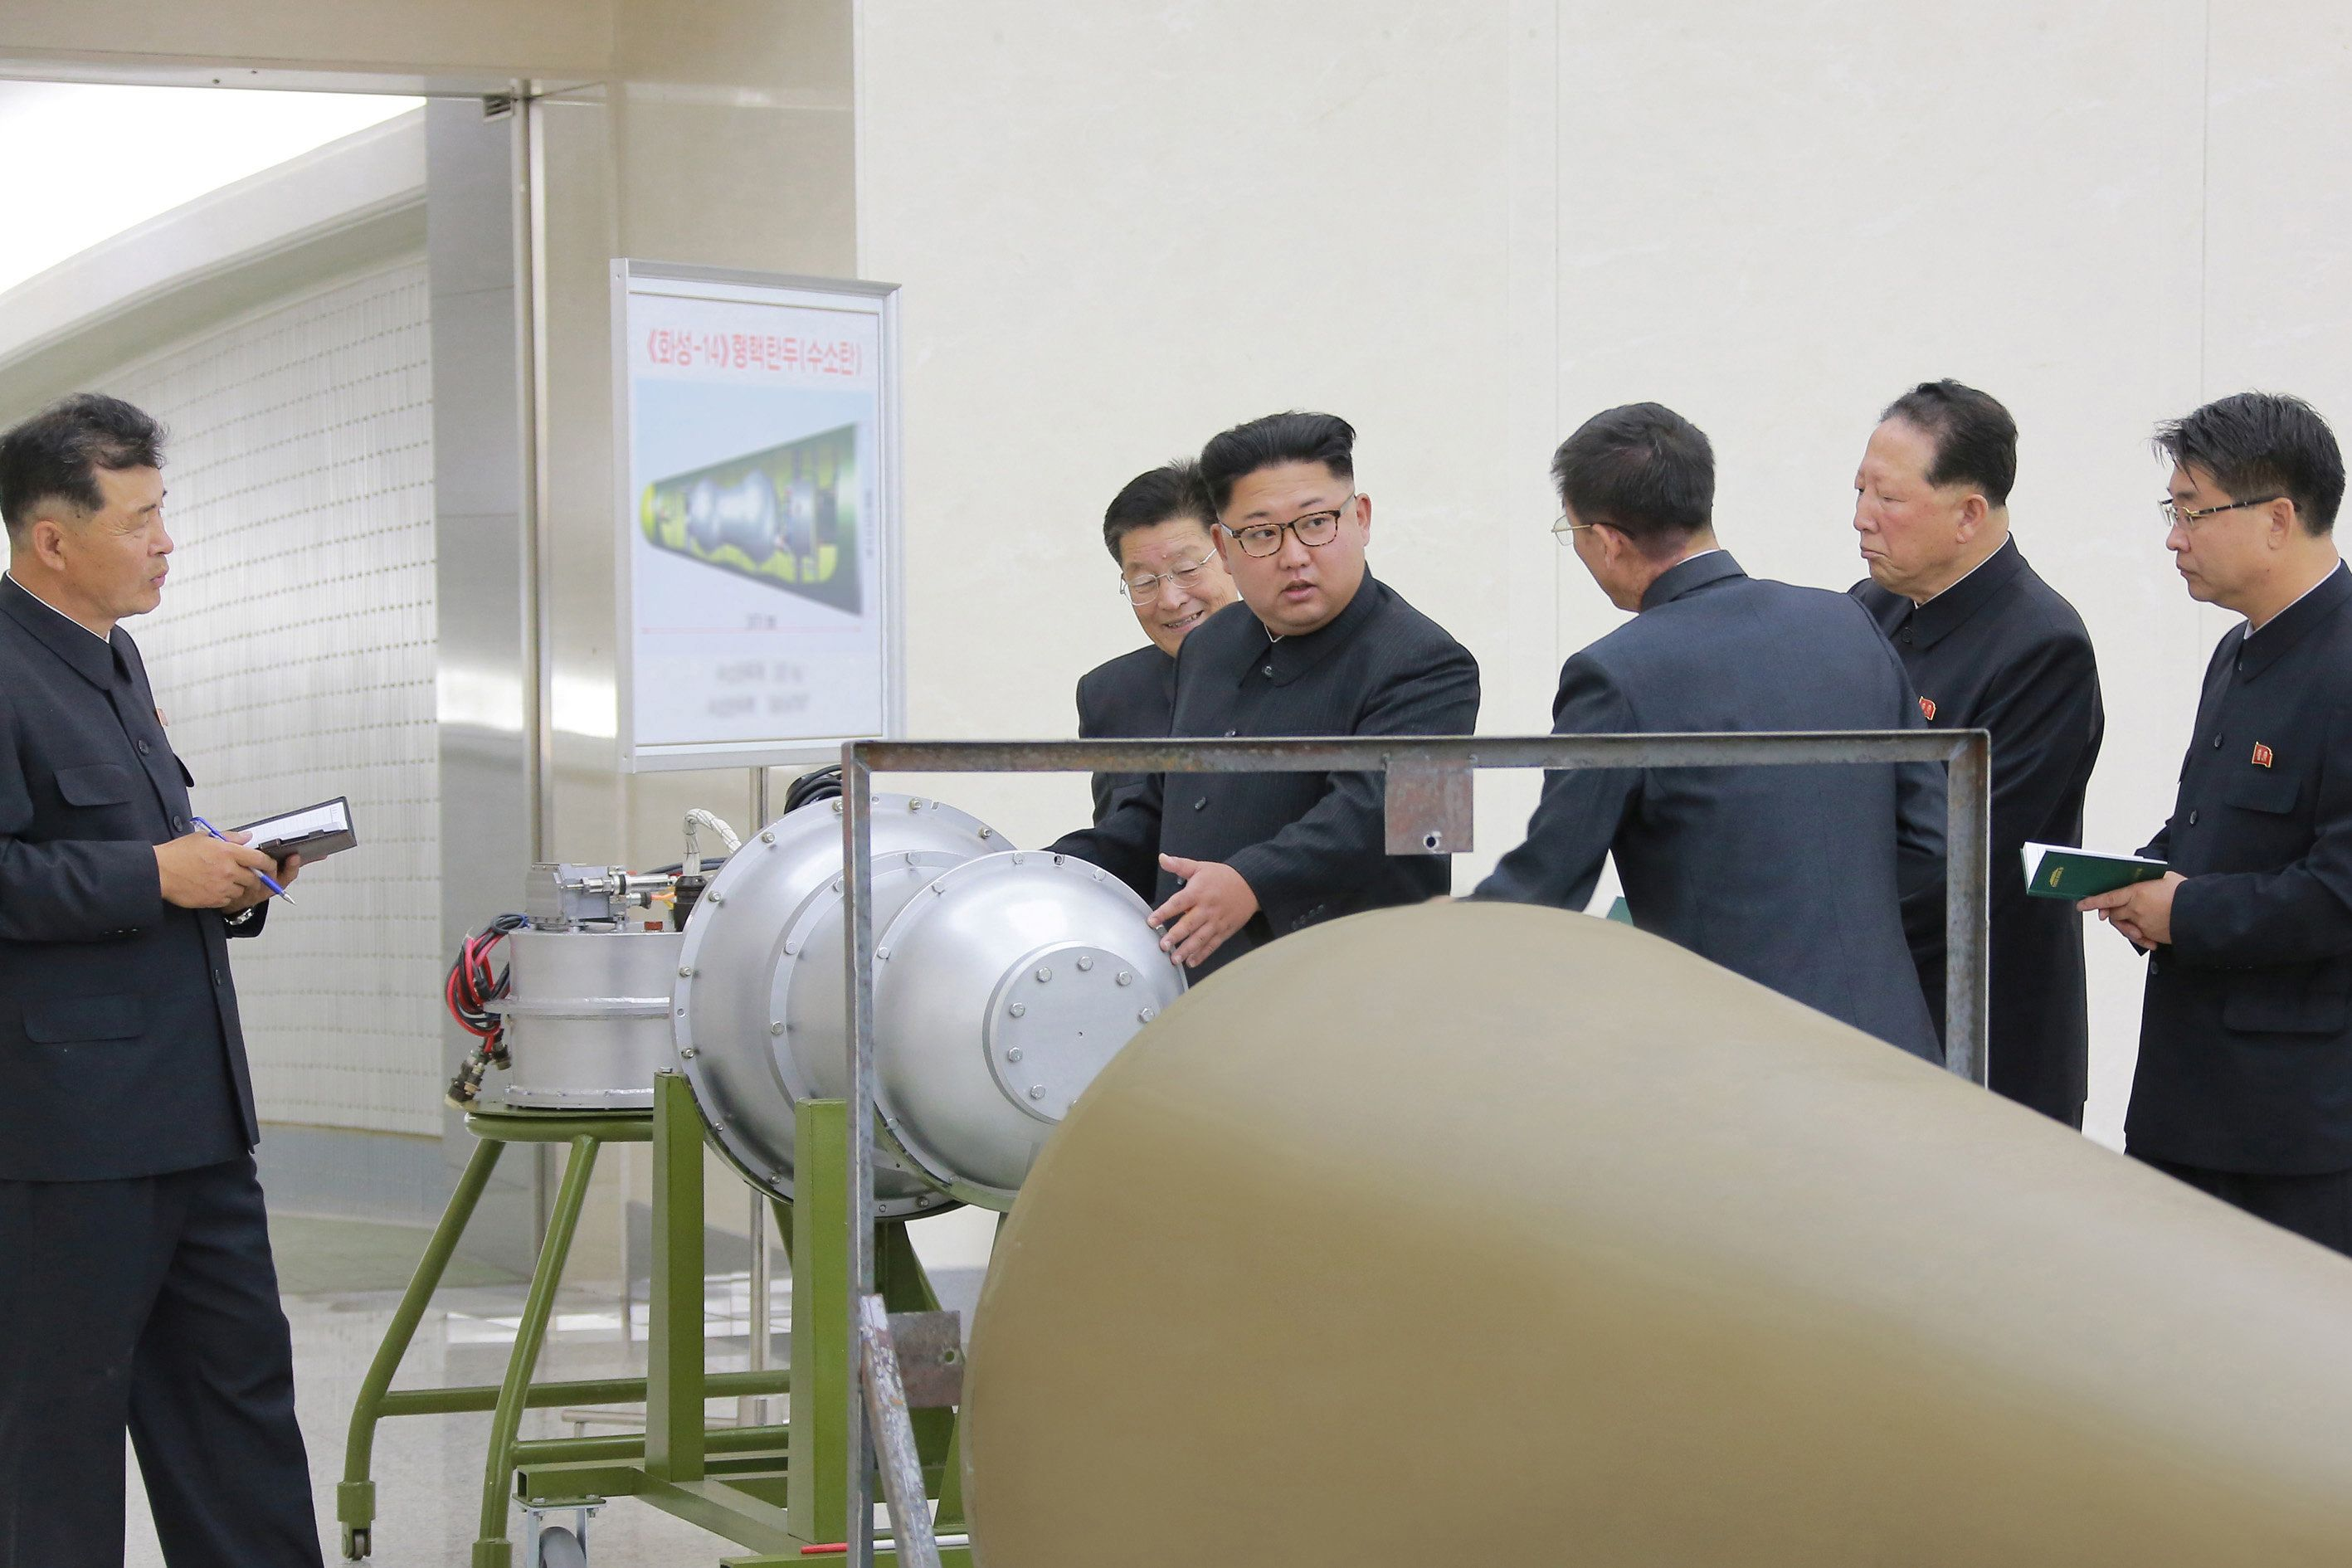 Everything We Know So Far About North Korea's 'Successful' Nuclear